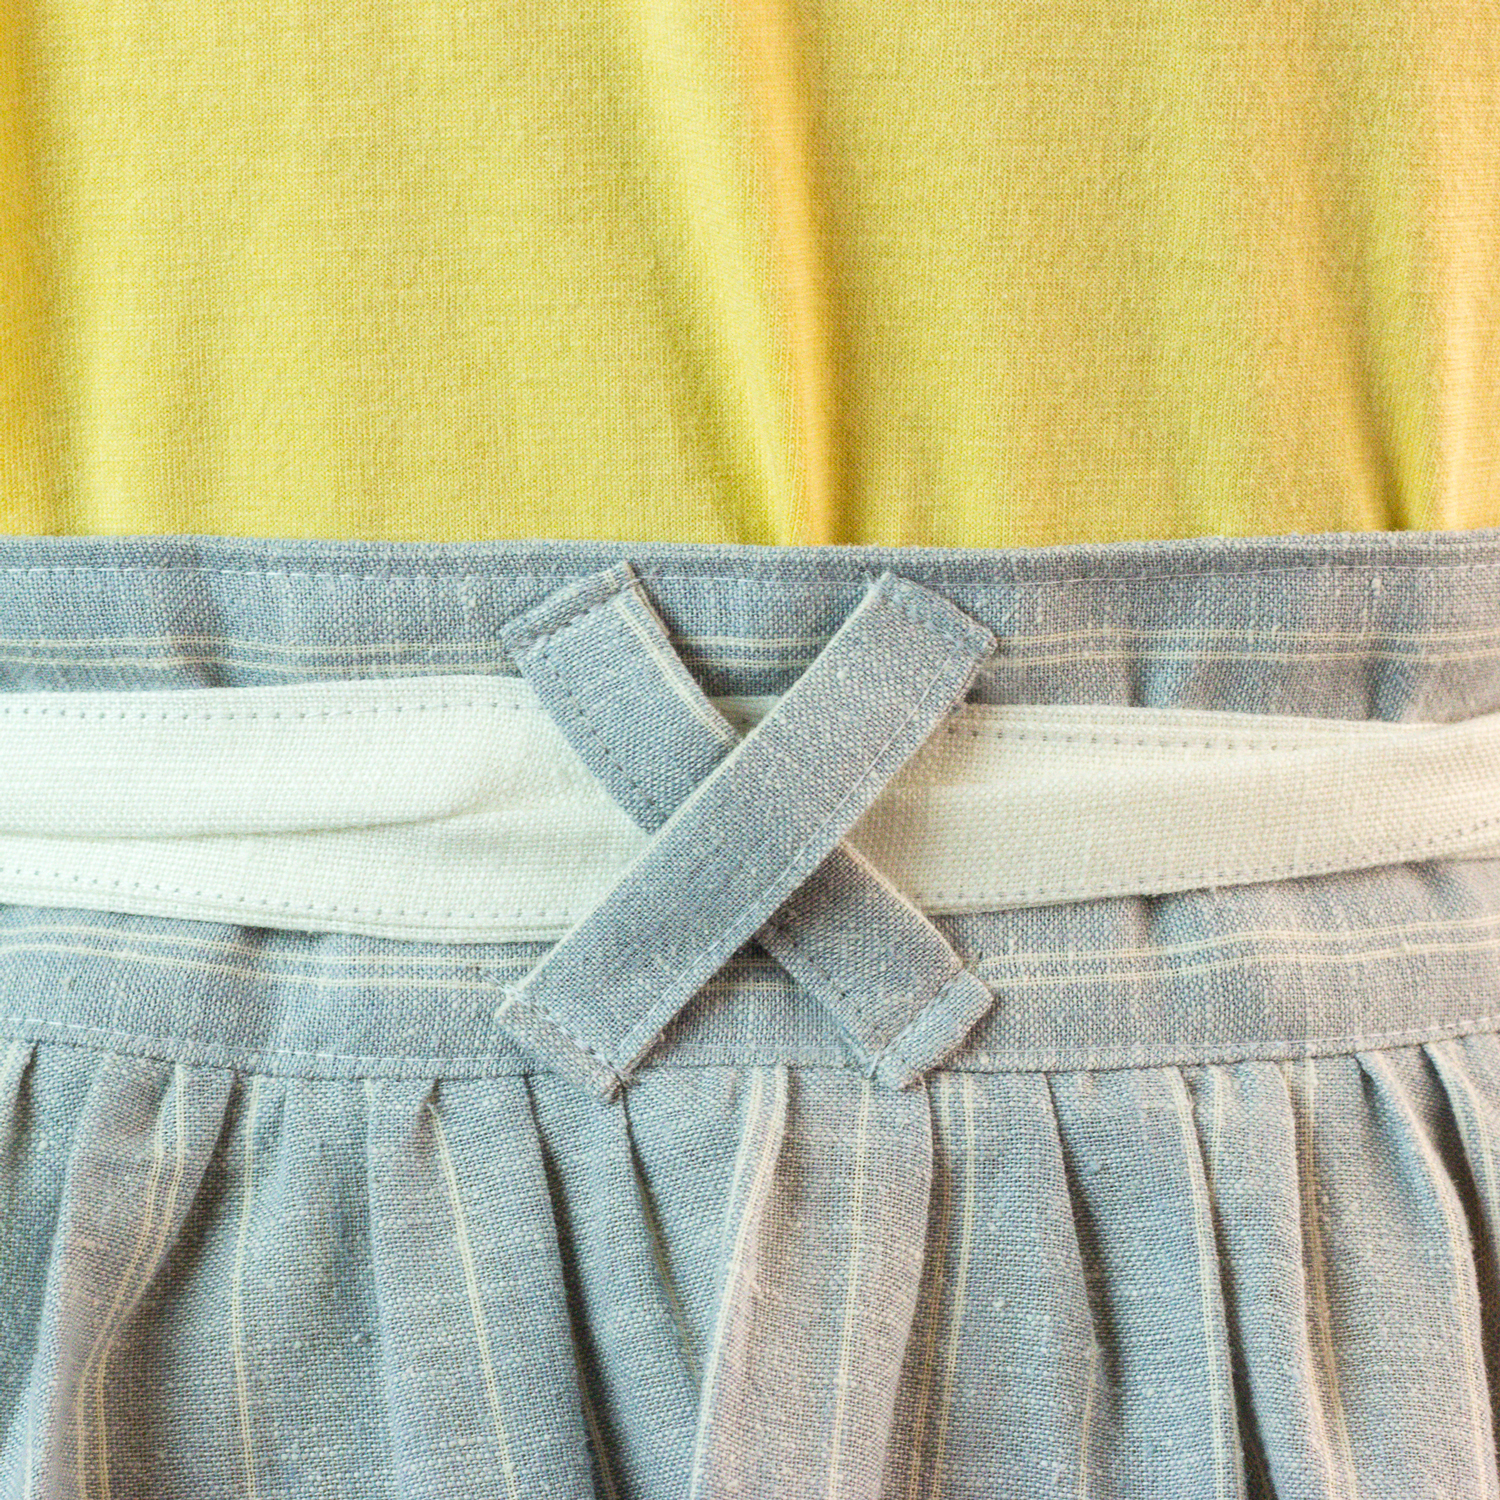 Rayna skirt & Bow pocket tee = the perfect pair